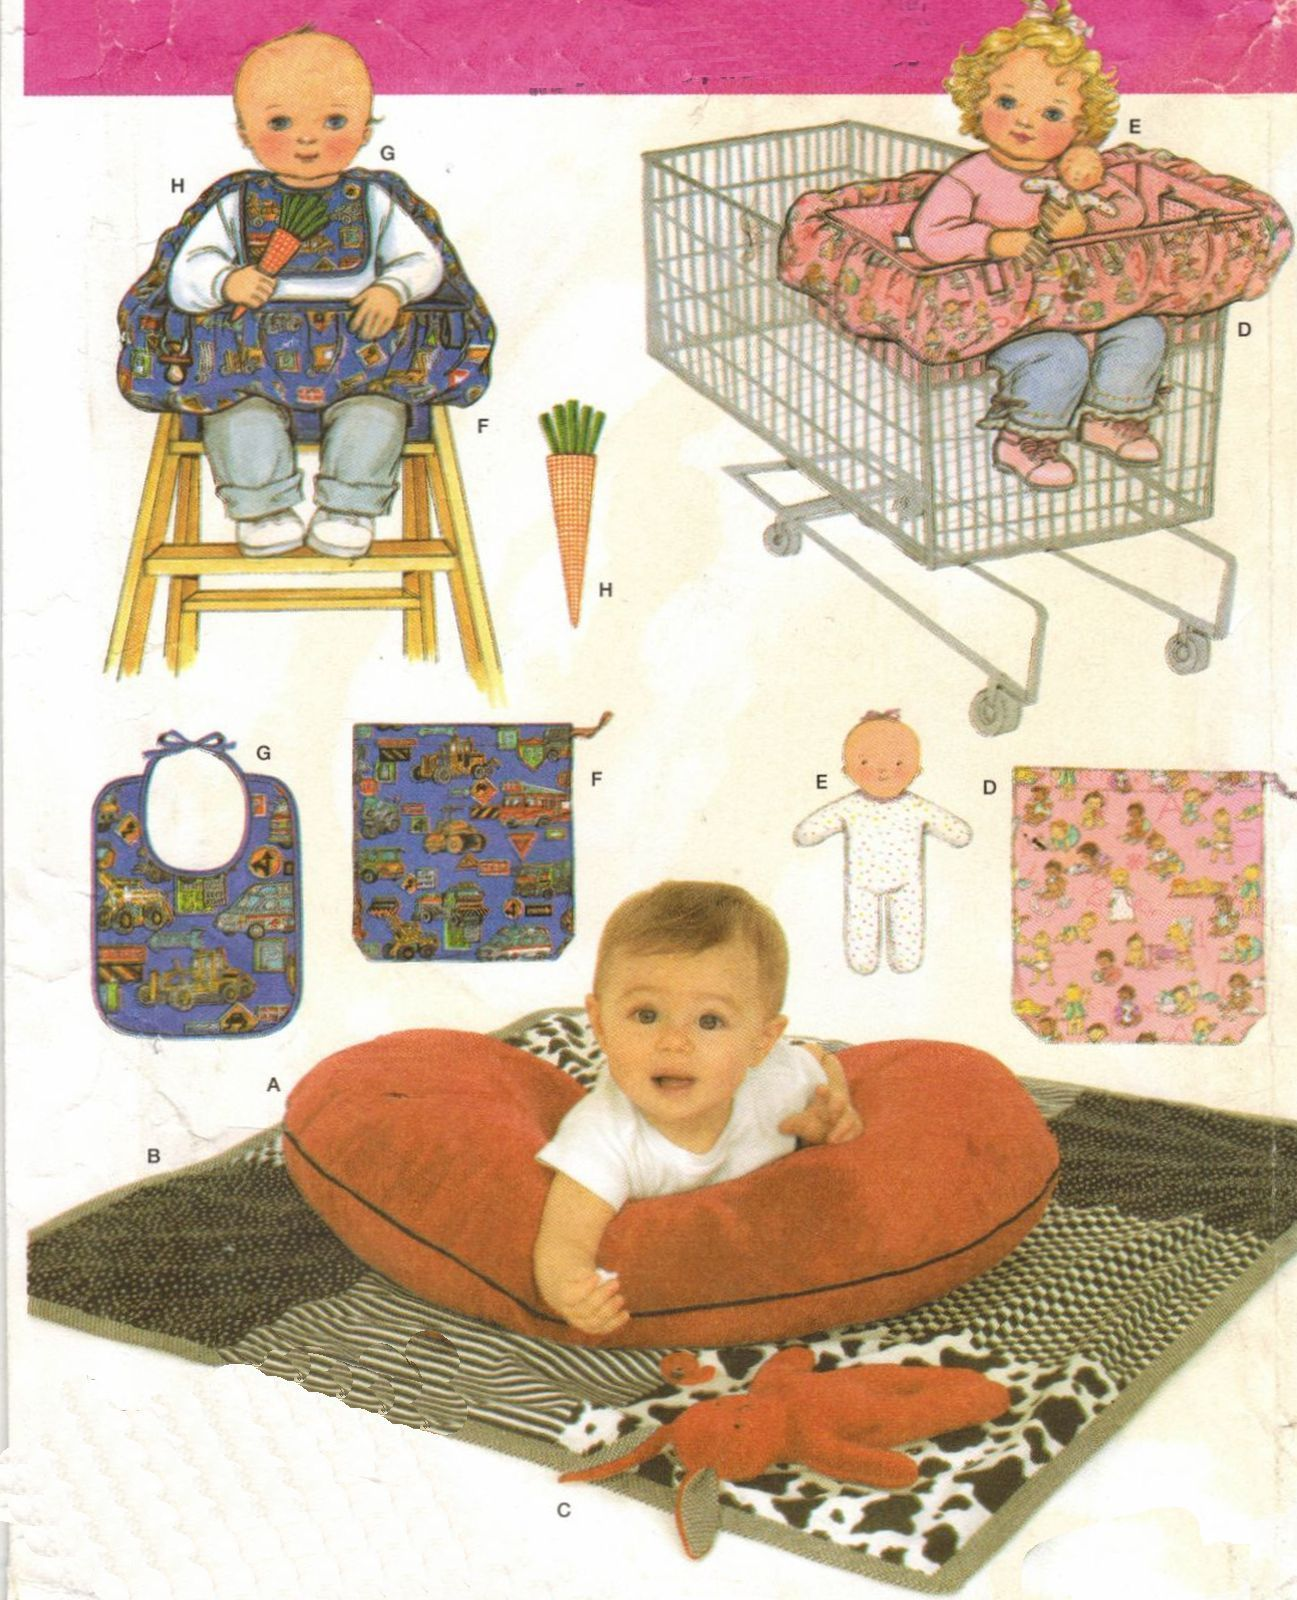 Simplicity Pattern 4225 Baby Accessories shopping cart seat cover quilt